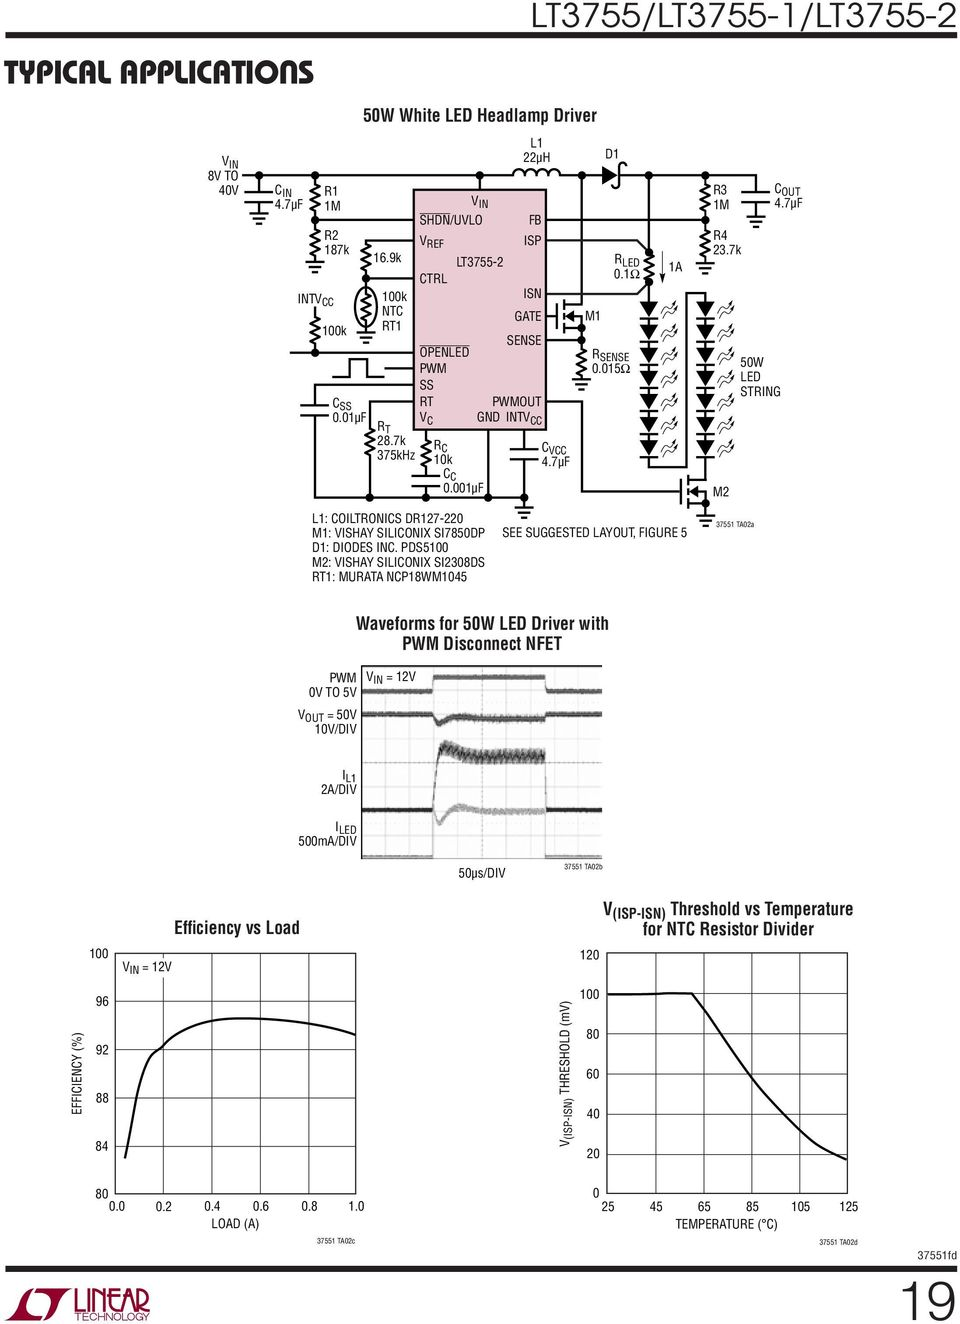 Lt3755 1 Lt V In 75v Out Led Controllers Features Figure 2 Hysteretic Buck Driver Circuit 7k M2 5w String C L1 Coiltronics Dr127 22 M1 Vishay